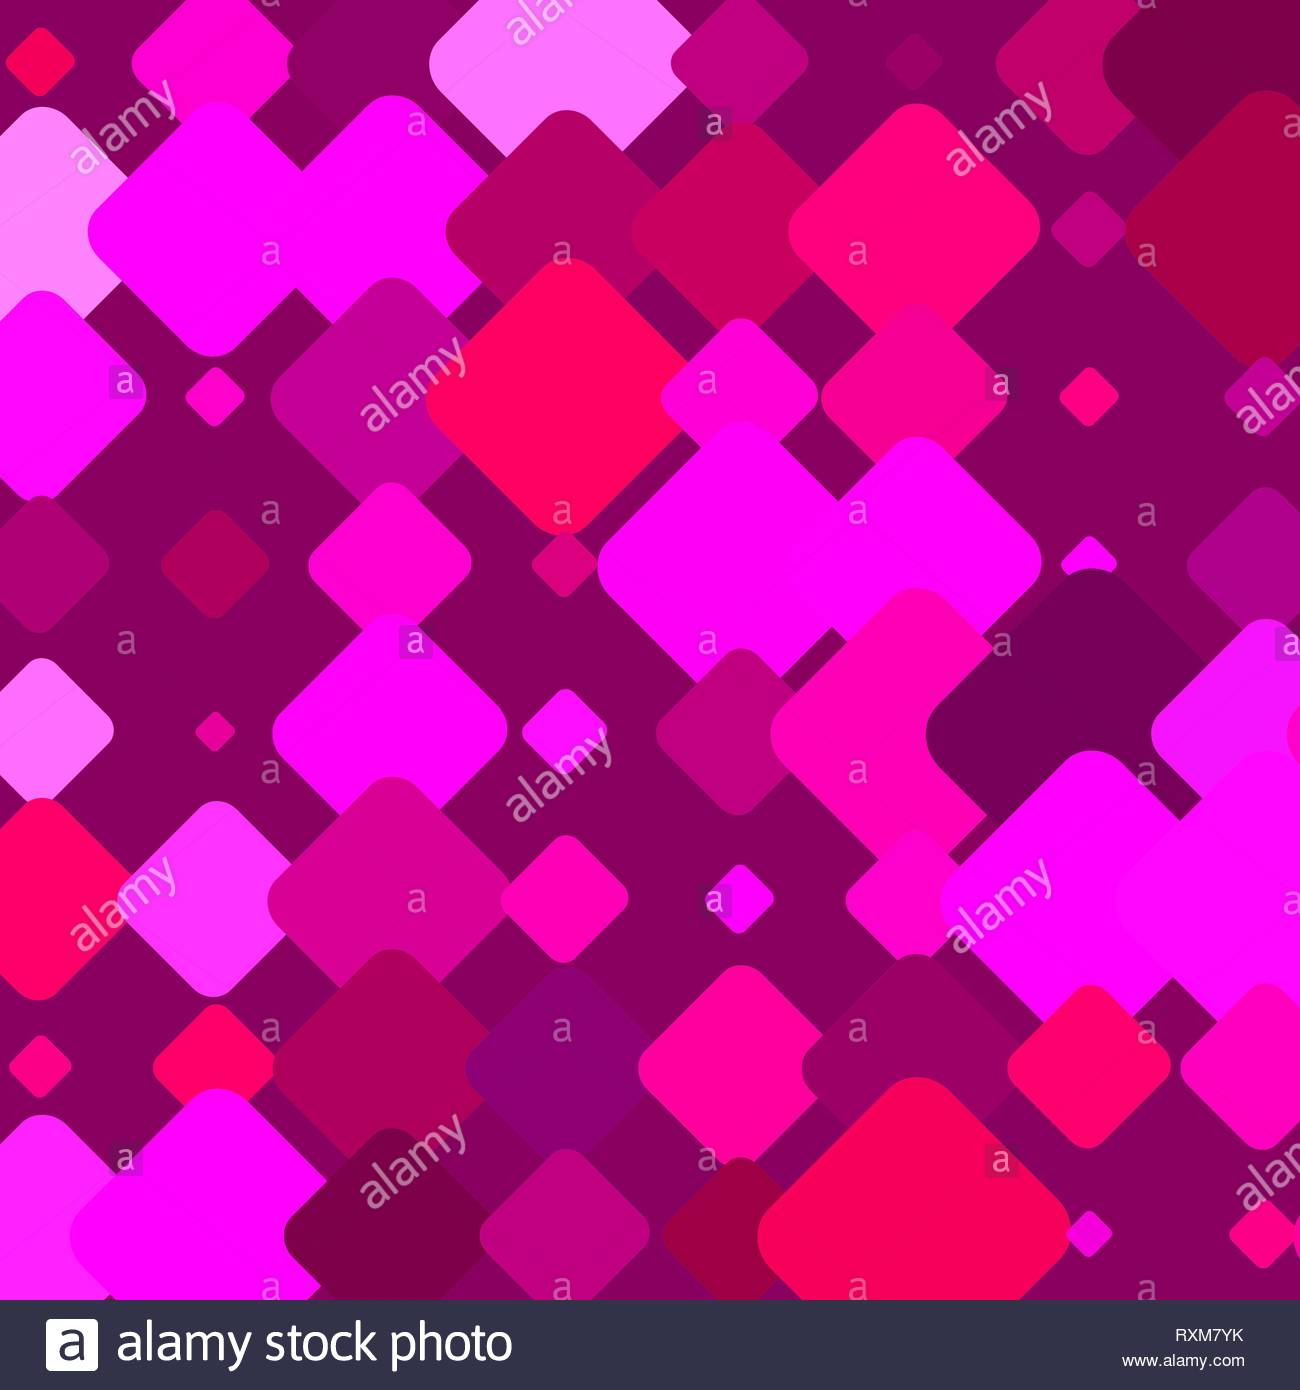 Purple BG with Colorful Magenta Square Elements - Stock Image